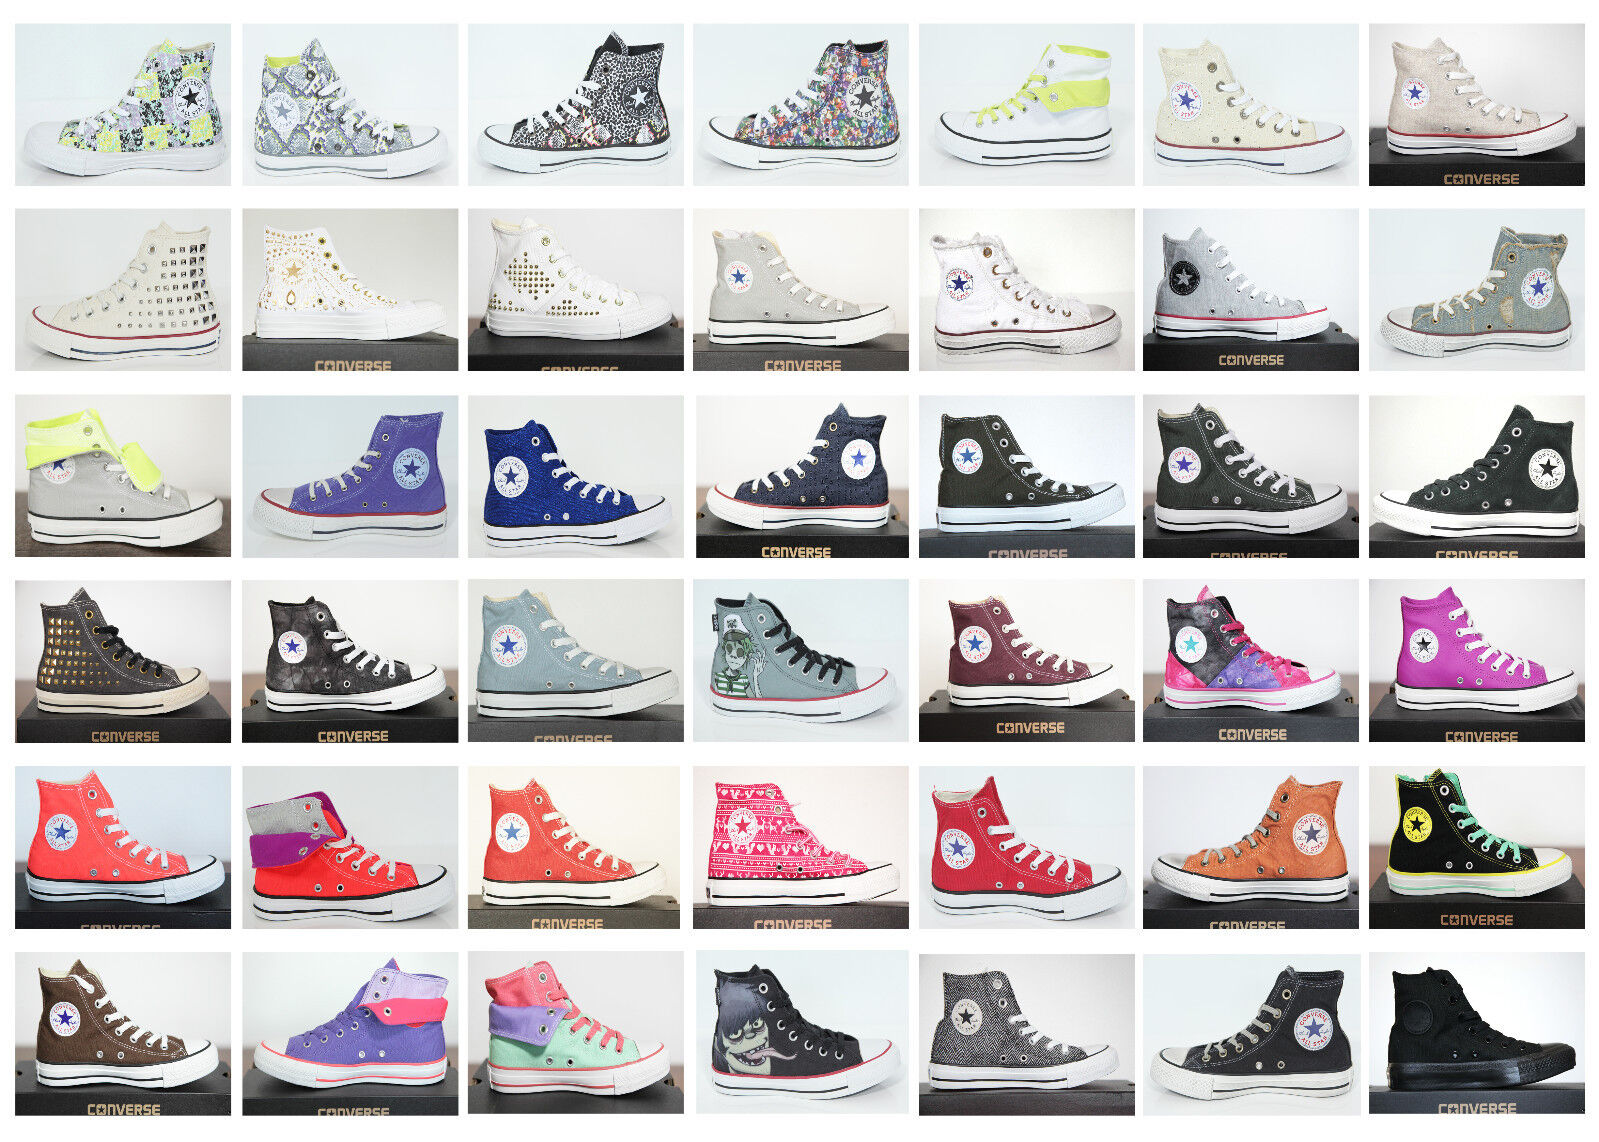 huge selection of 7cf20 4bca9 Converse Creme Vergleich Test +++ Converse Creme Angebote!